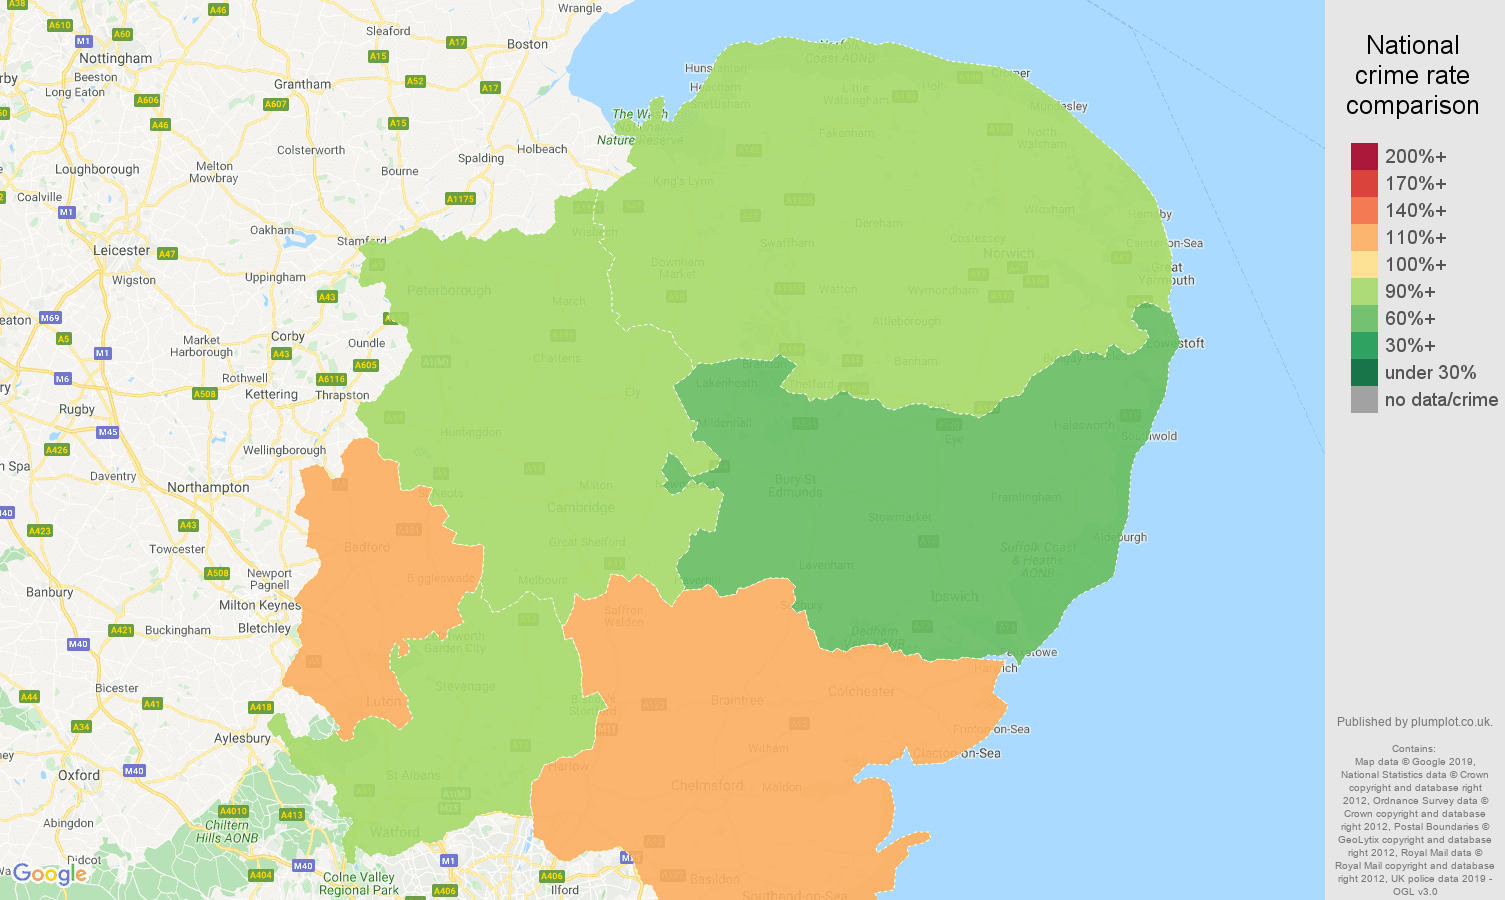 East of England possession of weapons crime rate comparison map